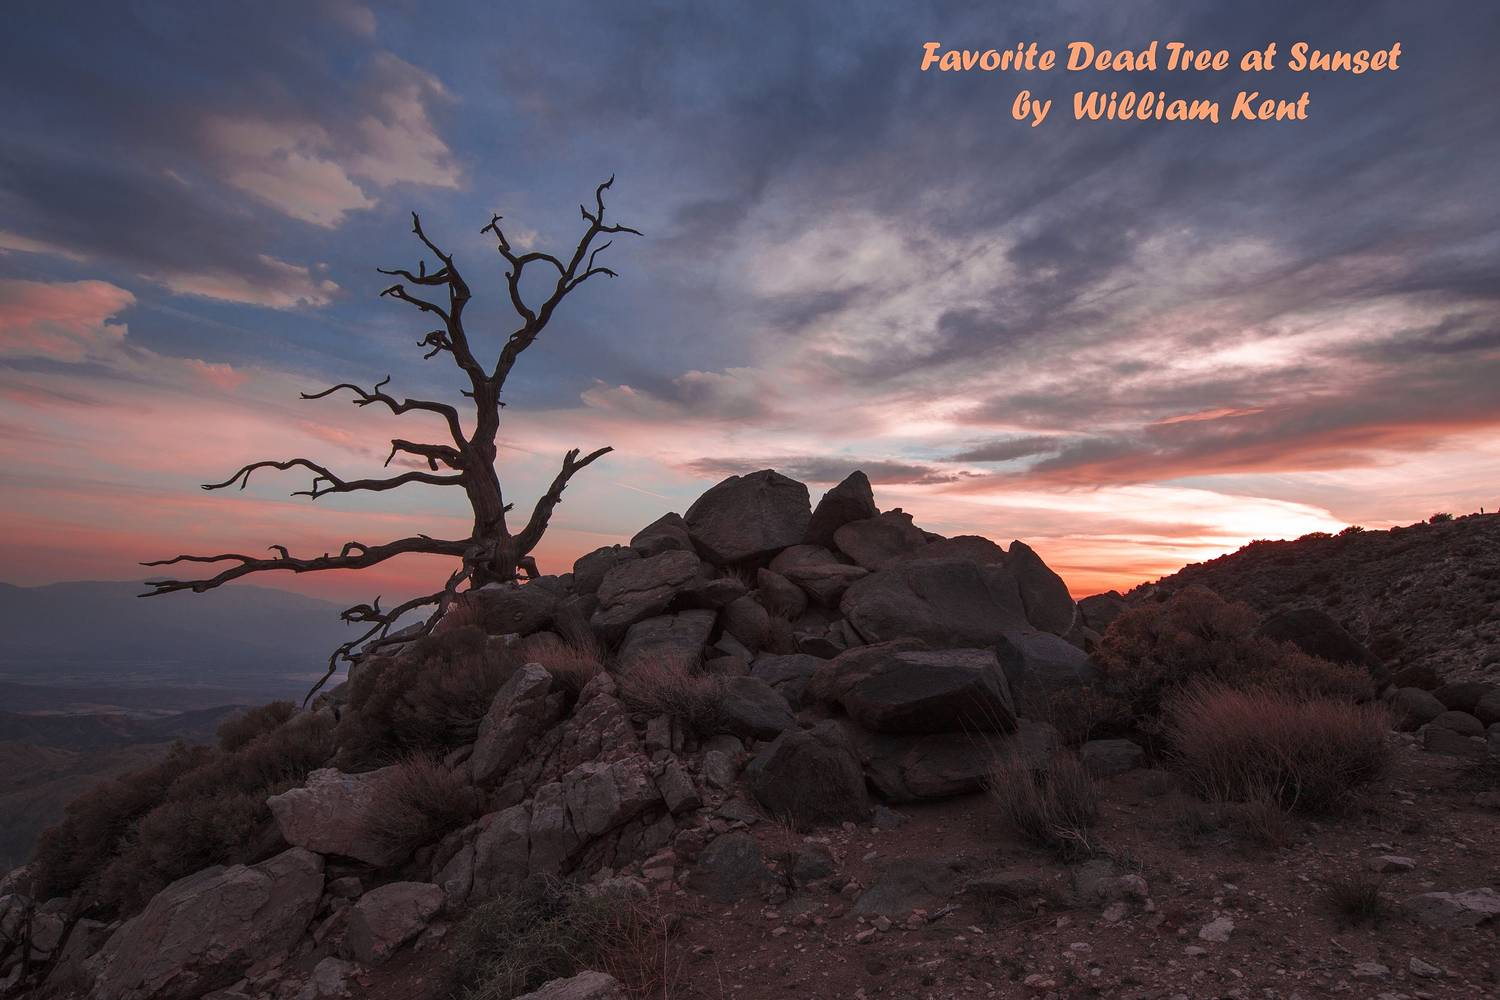 Favorite Dead Tree at Sunset by William Kent